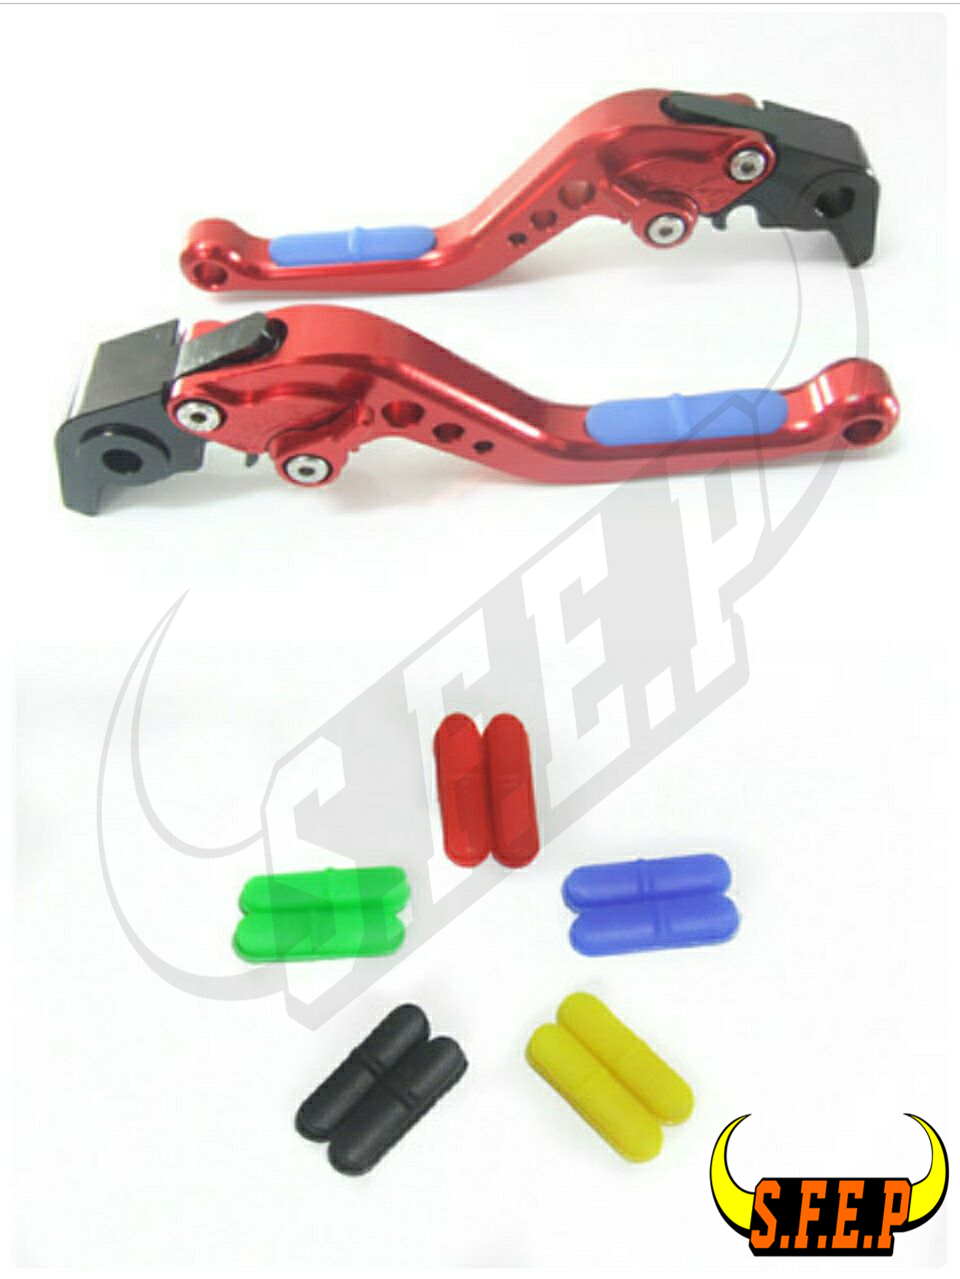 CNC Adjustable Motorcycle Brake and Clutch Levers with Anti-Slip For Ducati Scrambler Desert Sled 2017